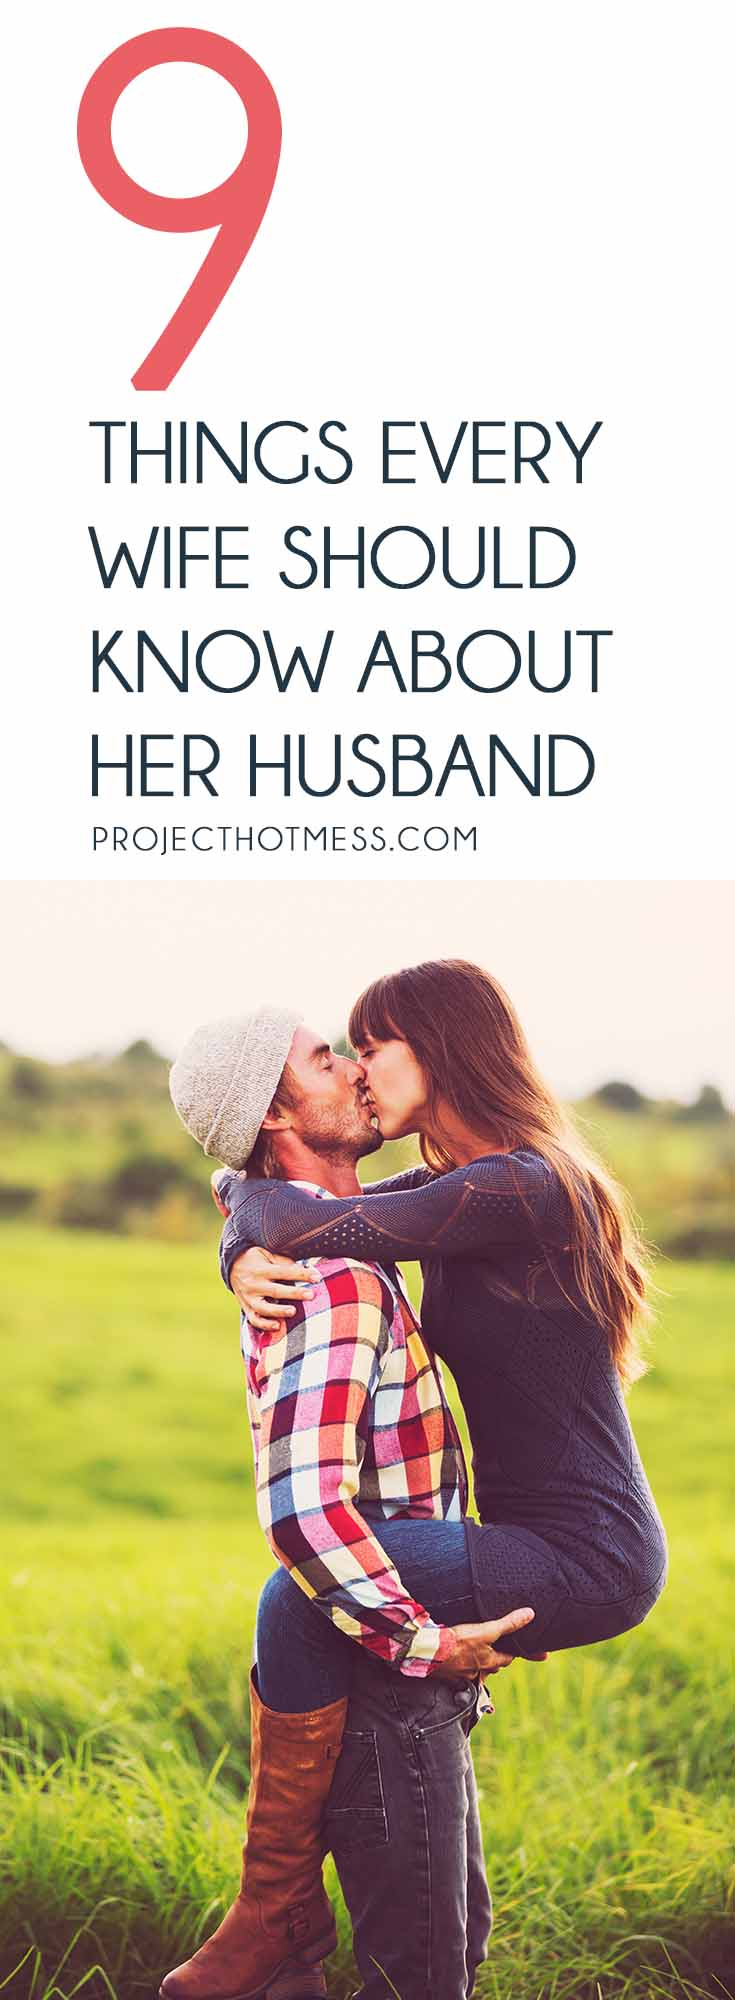 When it comes to relationships the 'getting to know you' phase is so exciting, and it shouldn't end once you get married. But there are a few things every wife should know about her husband (and equally, what every husband should know about his wife). Do you know all these things? And do you know why they're important? #marriedlife #marriage #marriageadvice #relationshipsadvice #marriagetips #relationshiptips